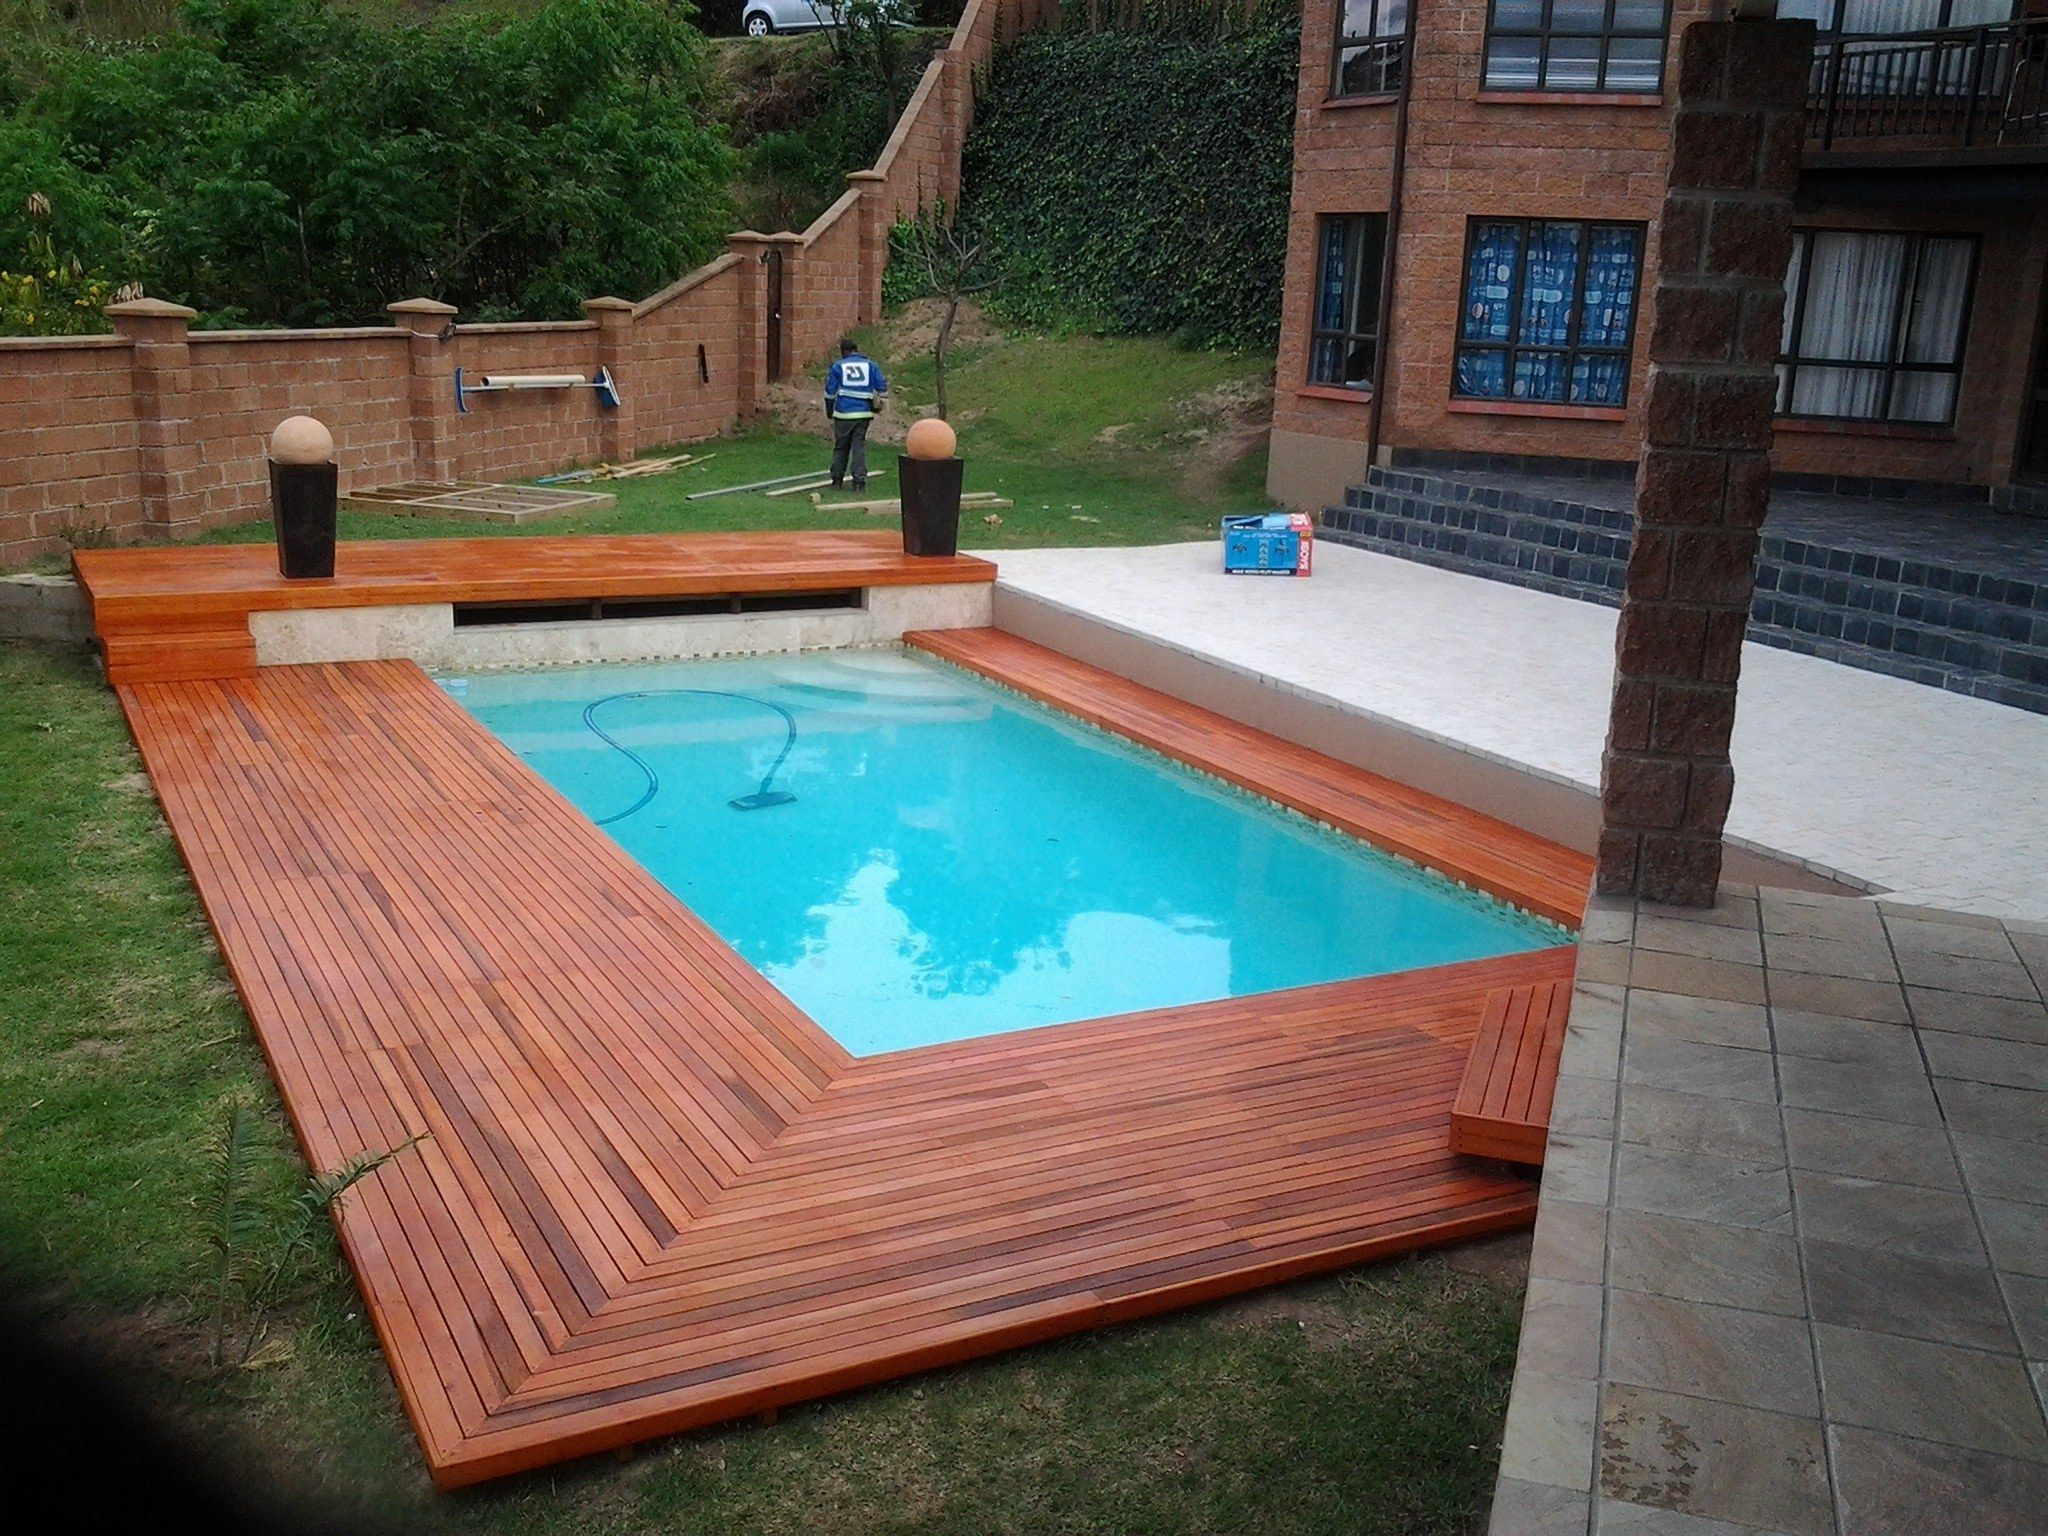 20 Stunning Wood Pool Deck Design For Home Outdoor Inspiration Ideas Teracee Wood Pool Deck Inground Pool Designs Pool Deck Plans